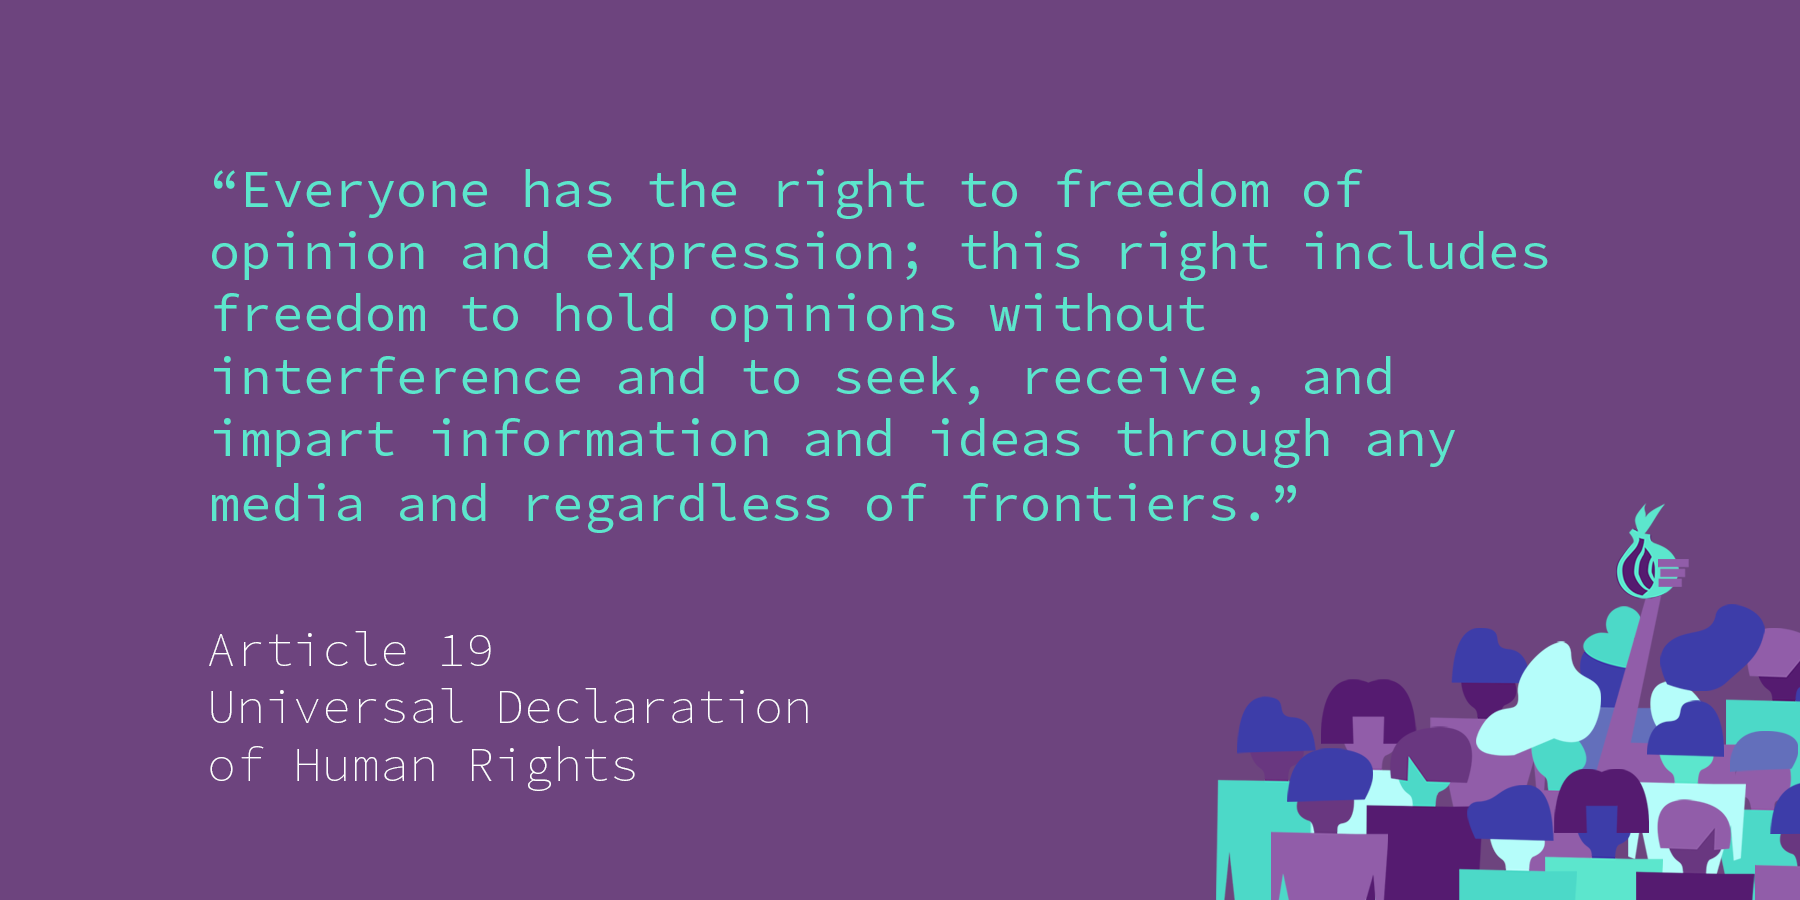 Universal Declaration of Human Rights - Article 19 - The Tor Project